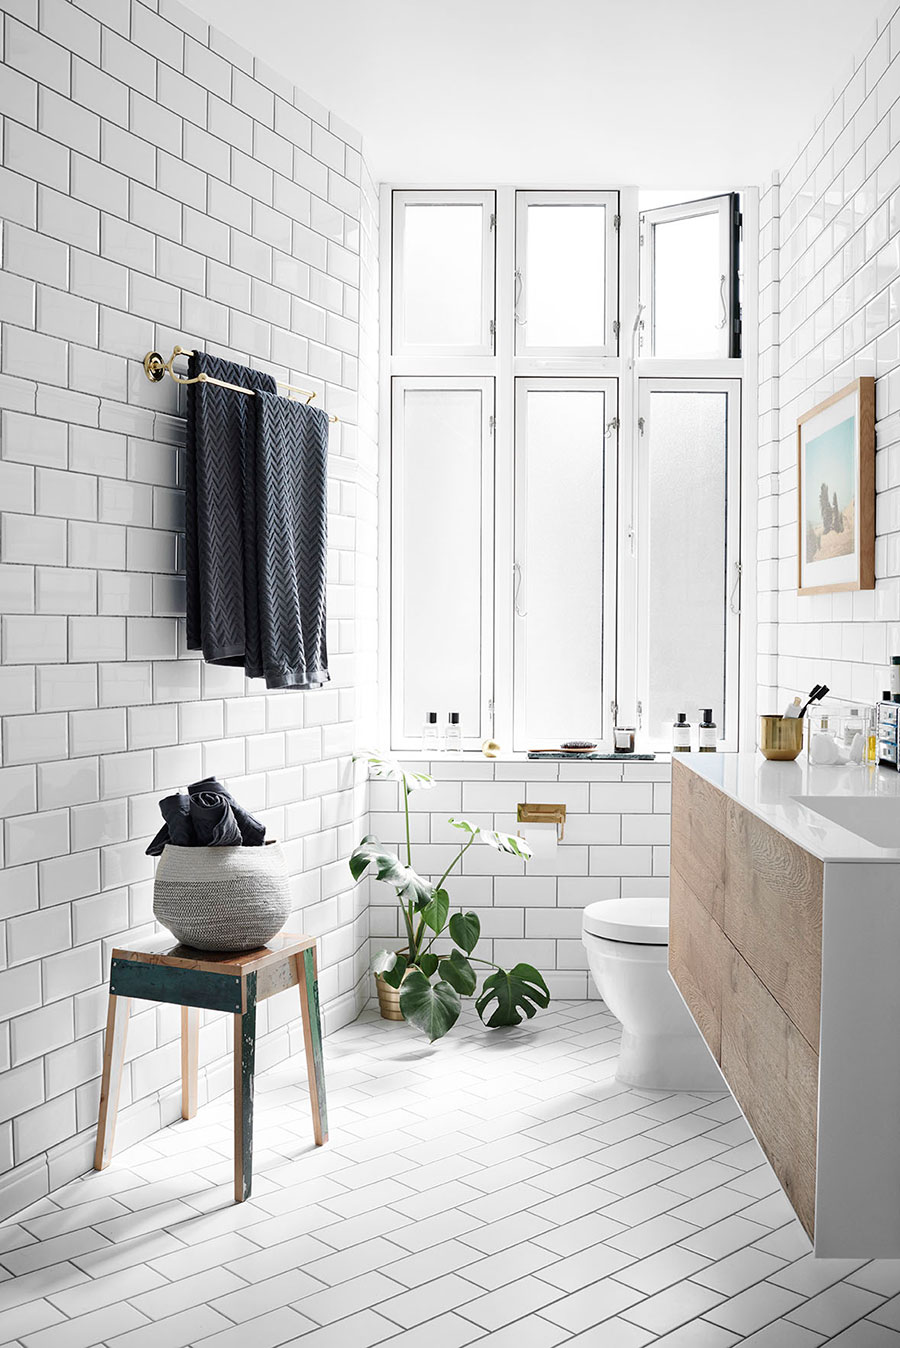 9 Tips To Make An Old Bathroom Feel New On A Budget